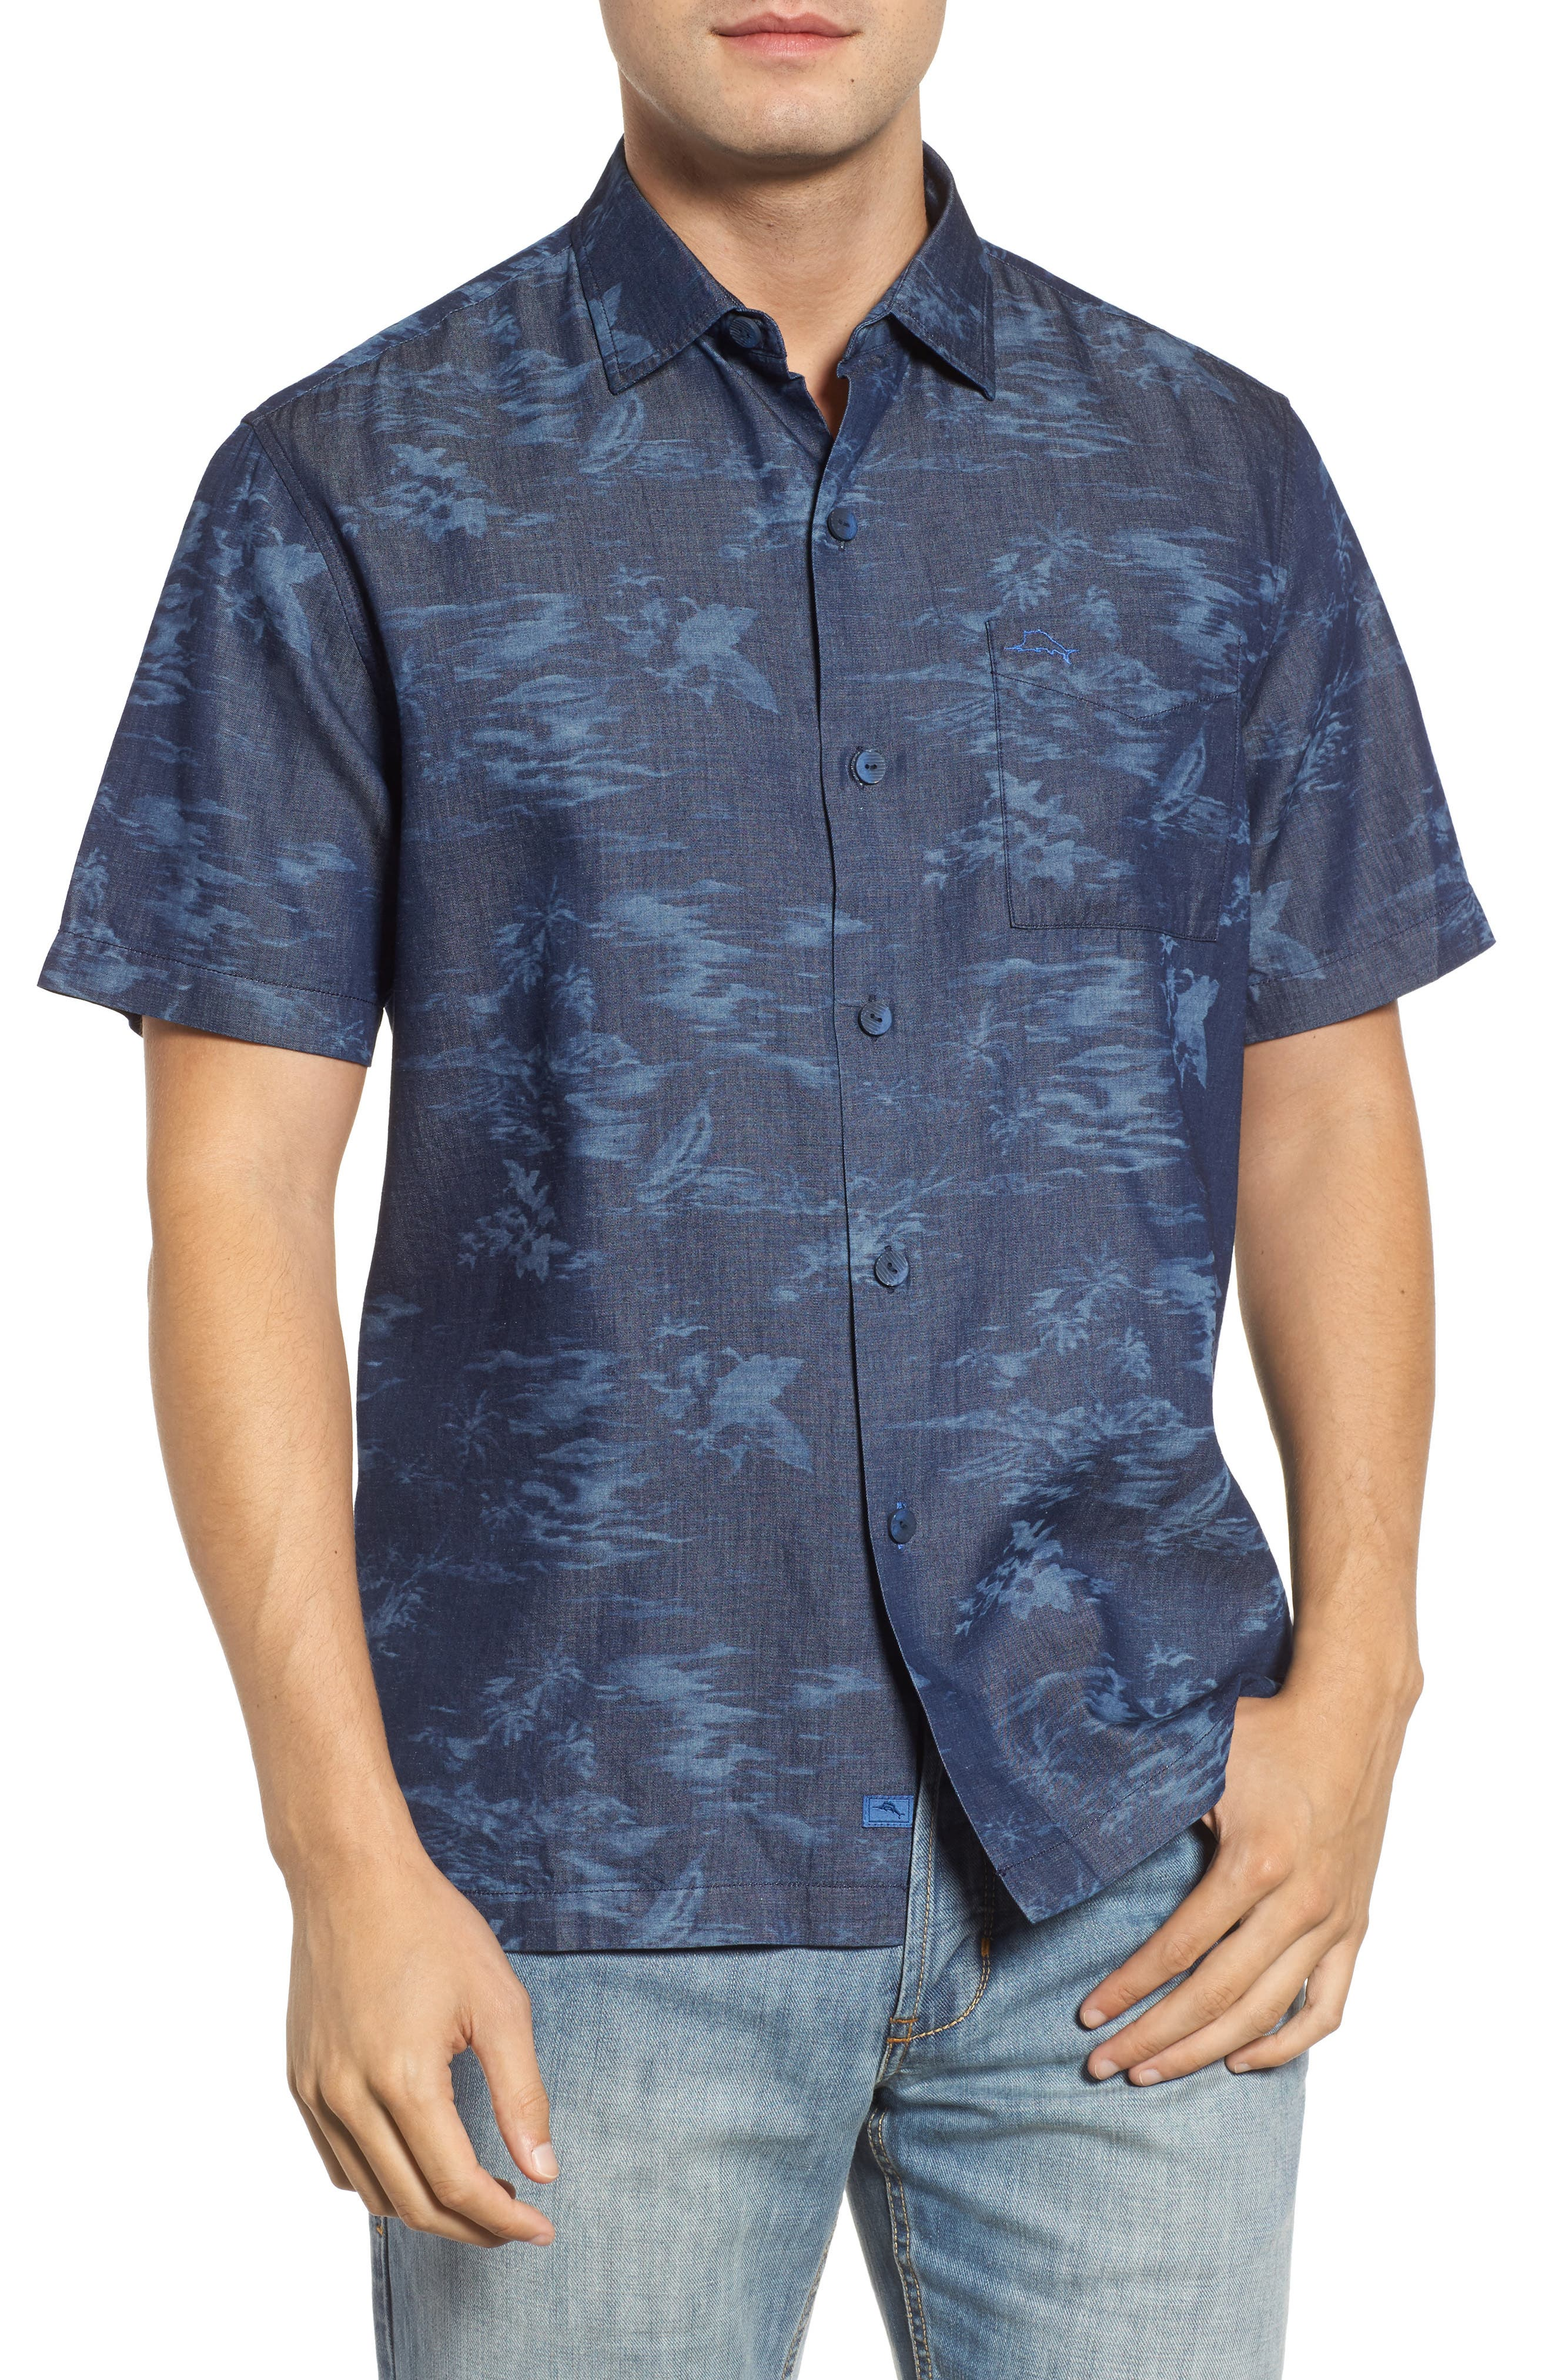 South Beach Scenic Sport Shirt,                         Main,                         color,